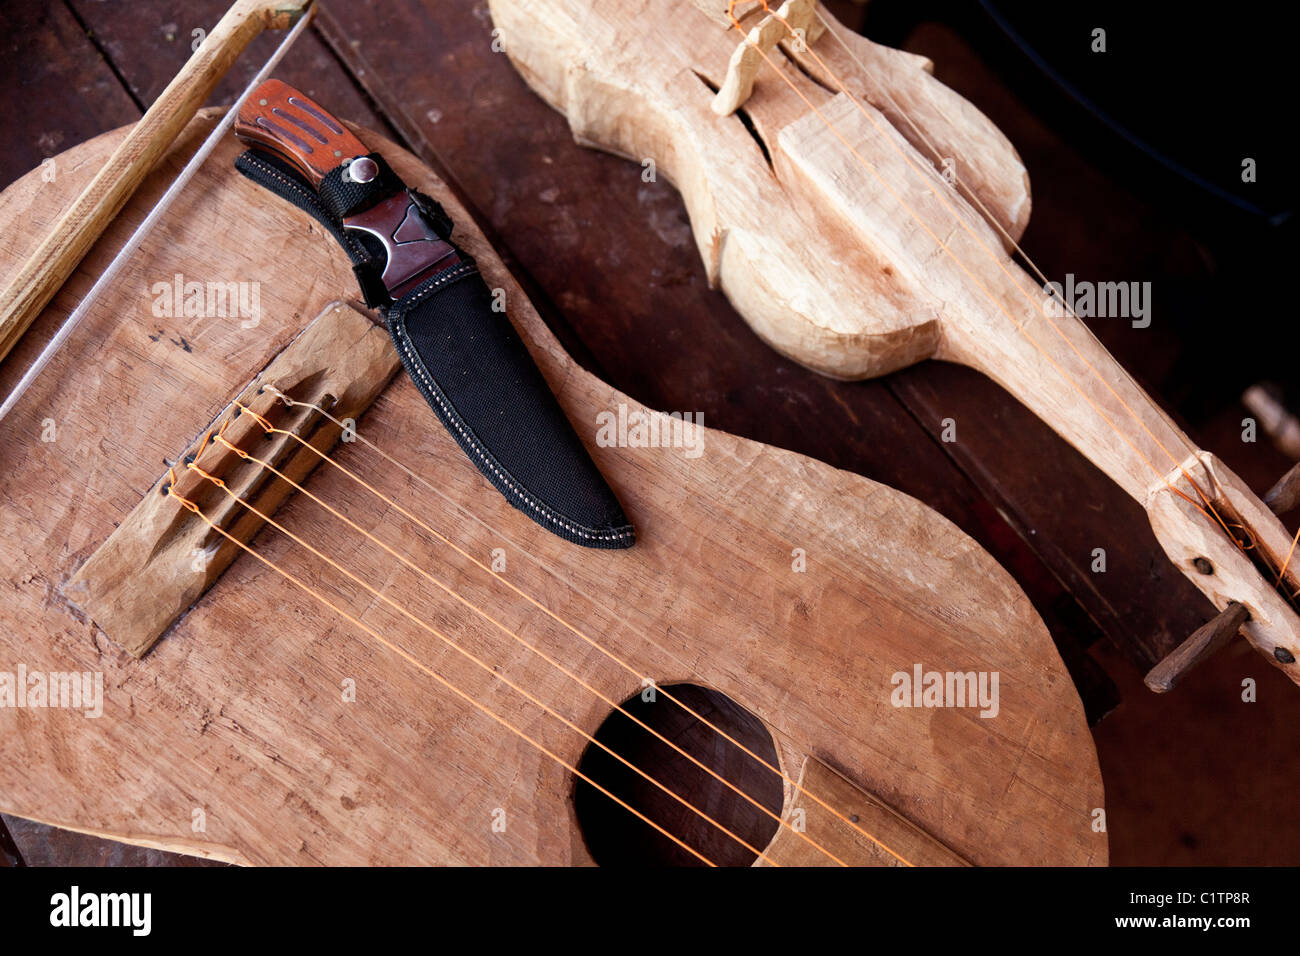 Violon et guitare faite main par Ramon Duarte, spirituel et culturel des aînés katupyry village près Photo Stock